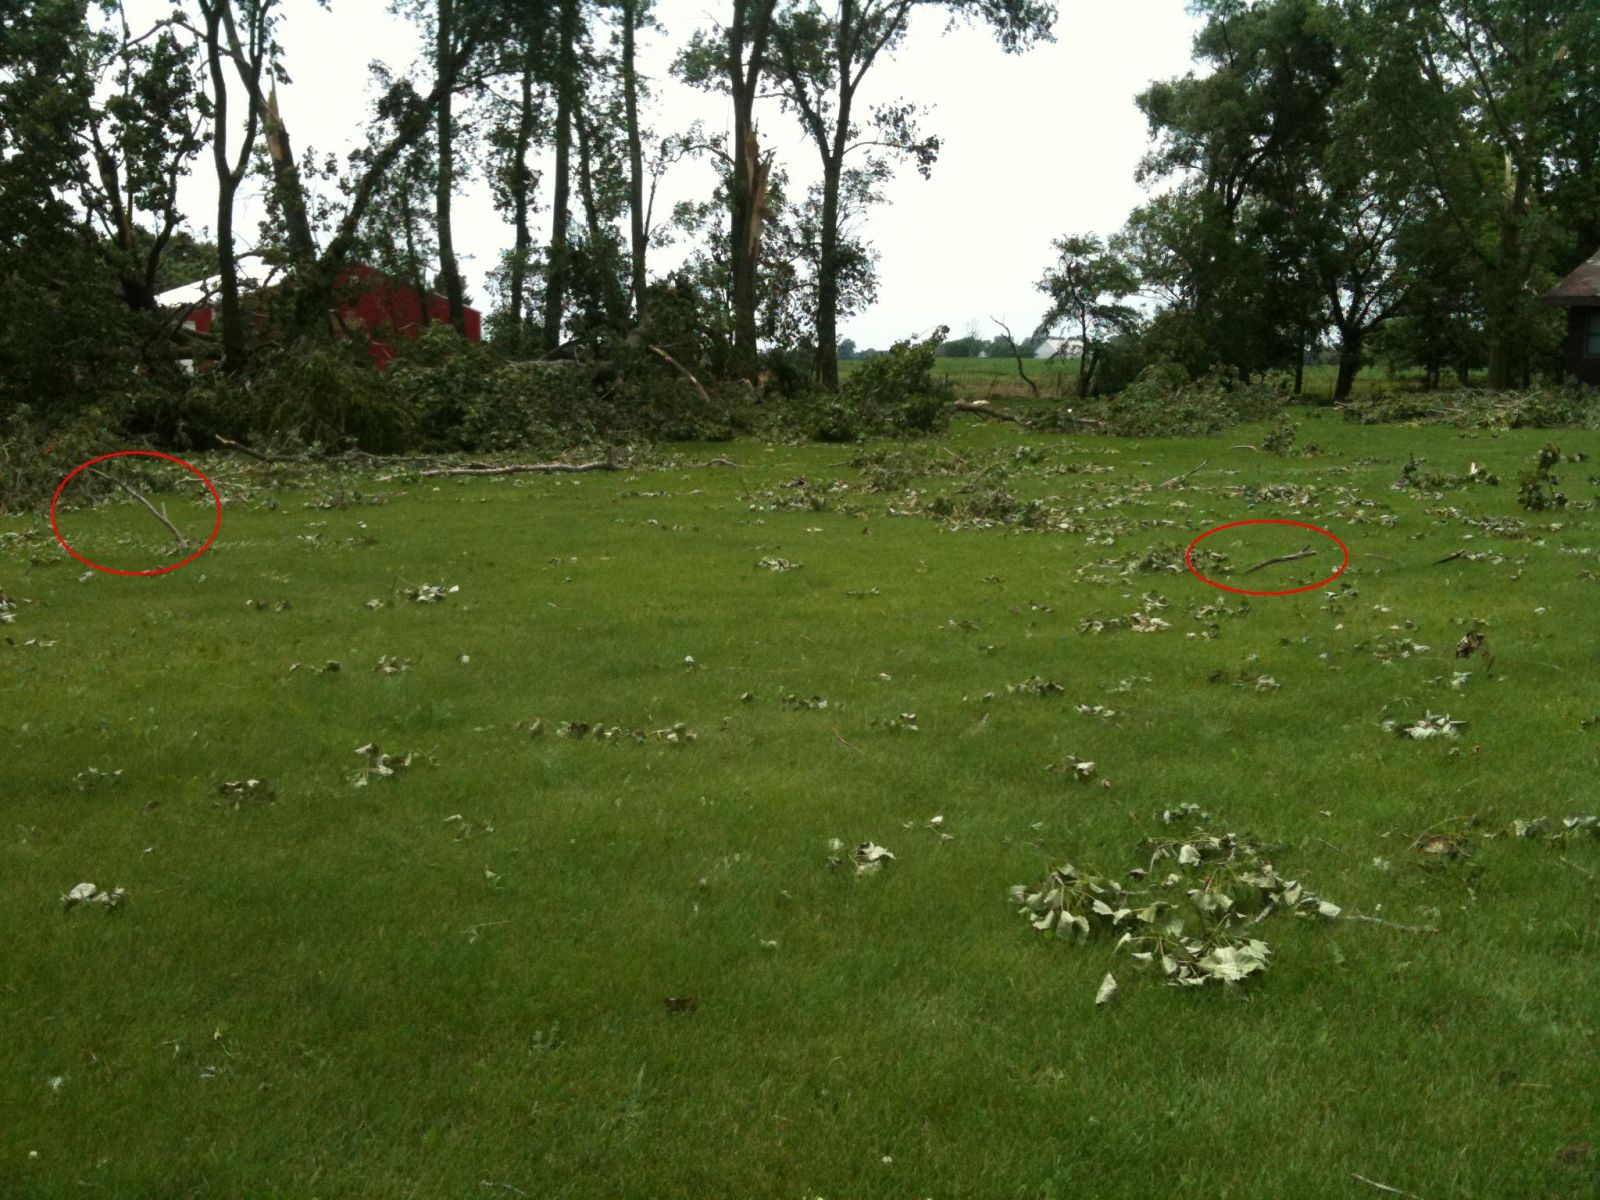 Extensive damage and branches speared in ground in convergent pattern